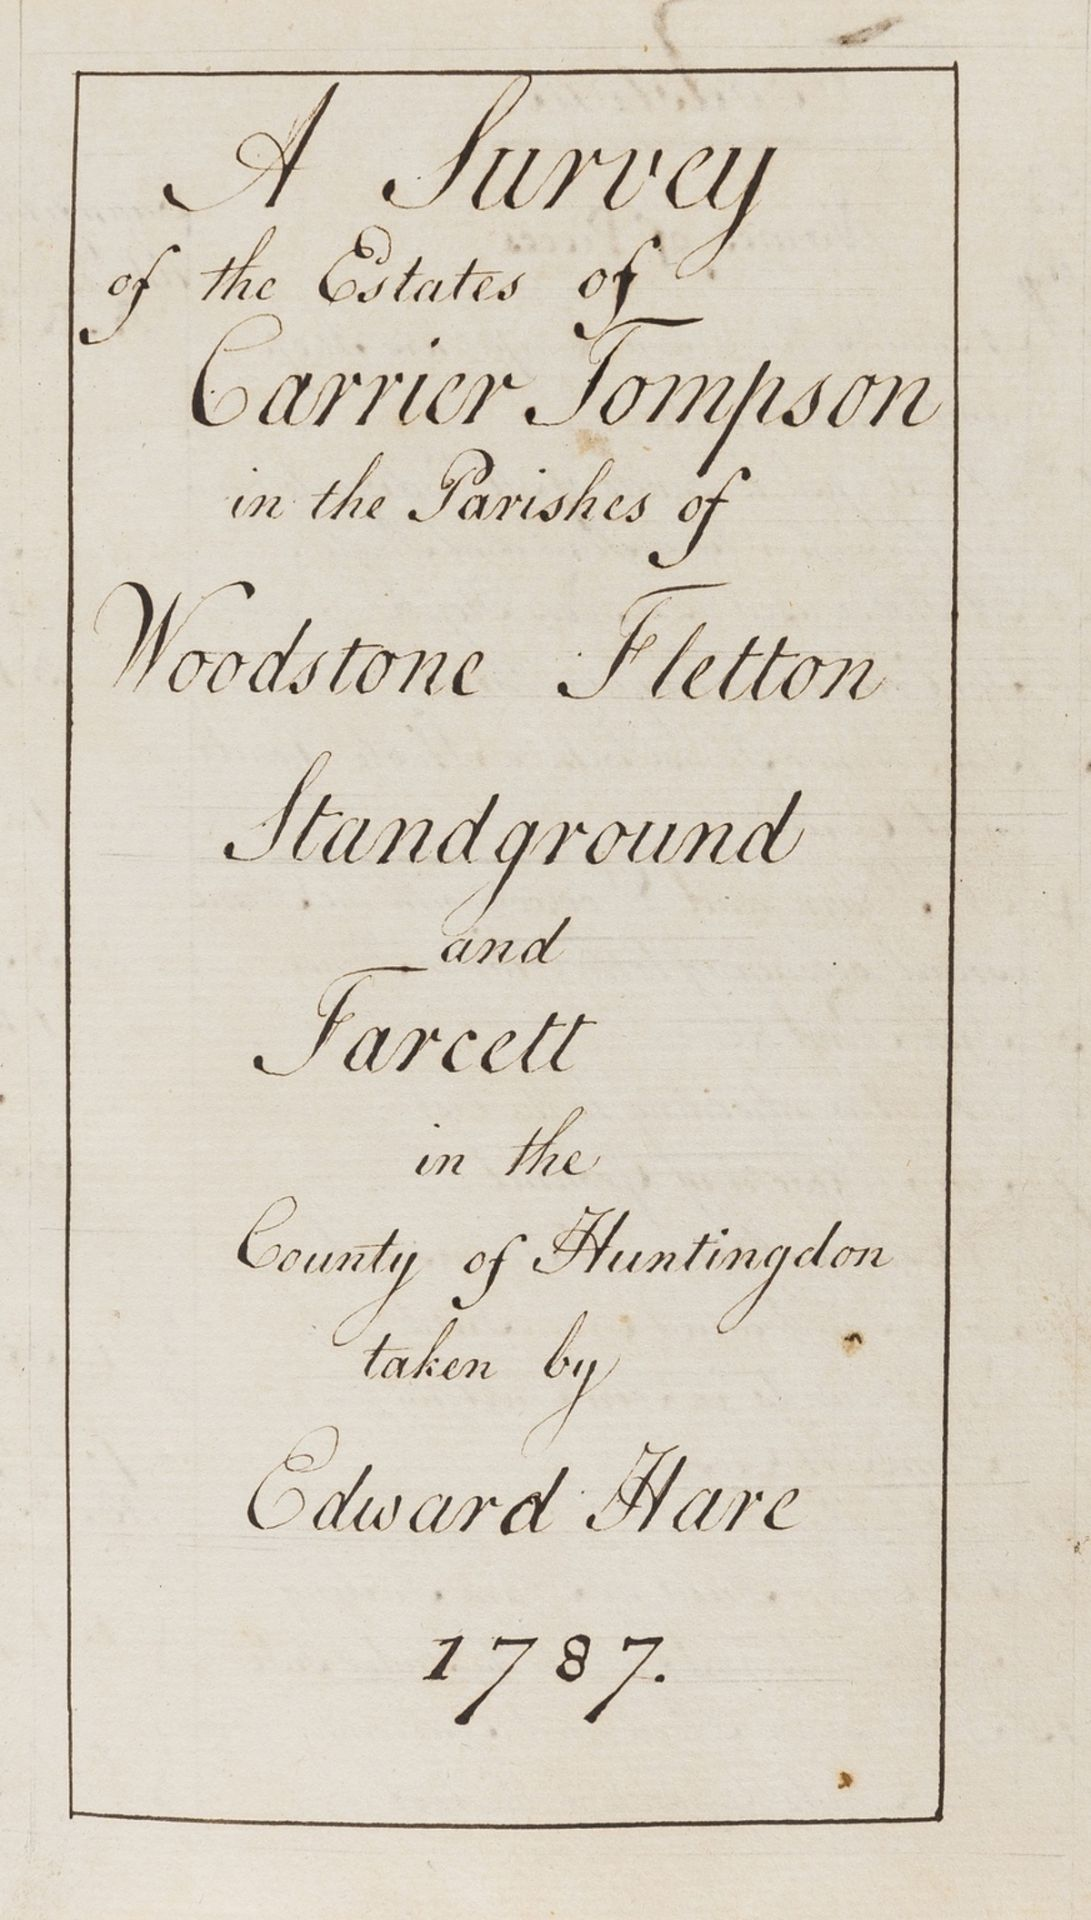 Huntingdonshire.- Hare (Edward, surveyor) A Survey of the Estates of Carrier Tompson in the …